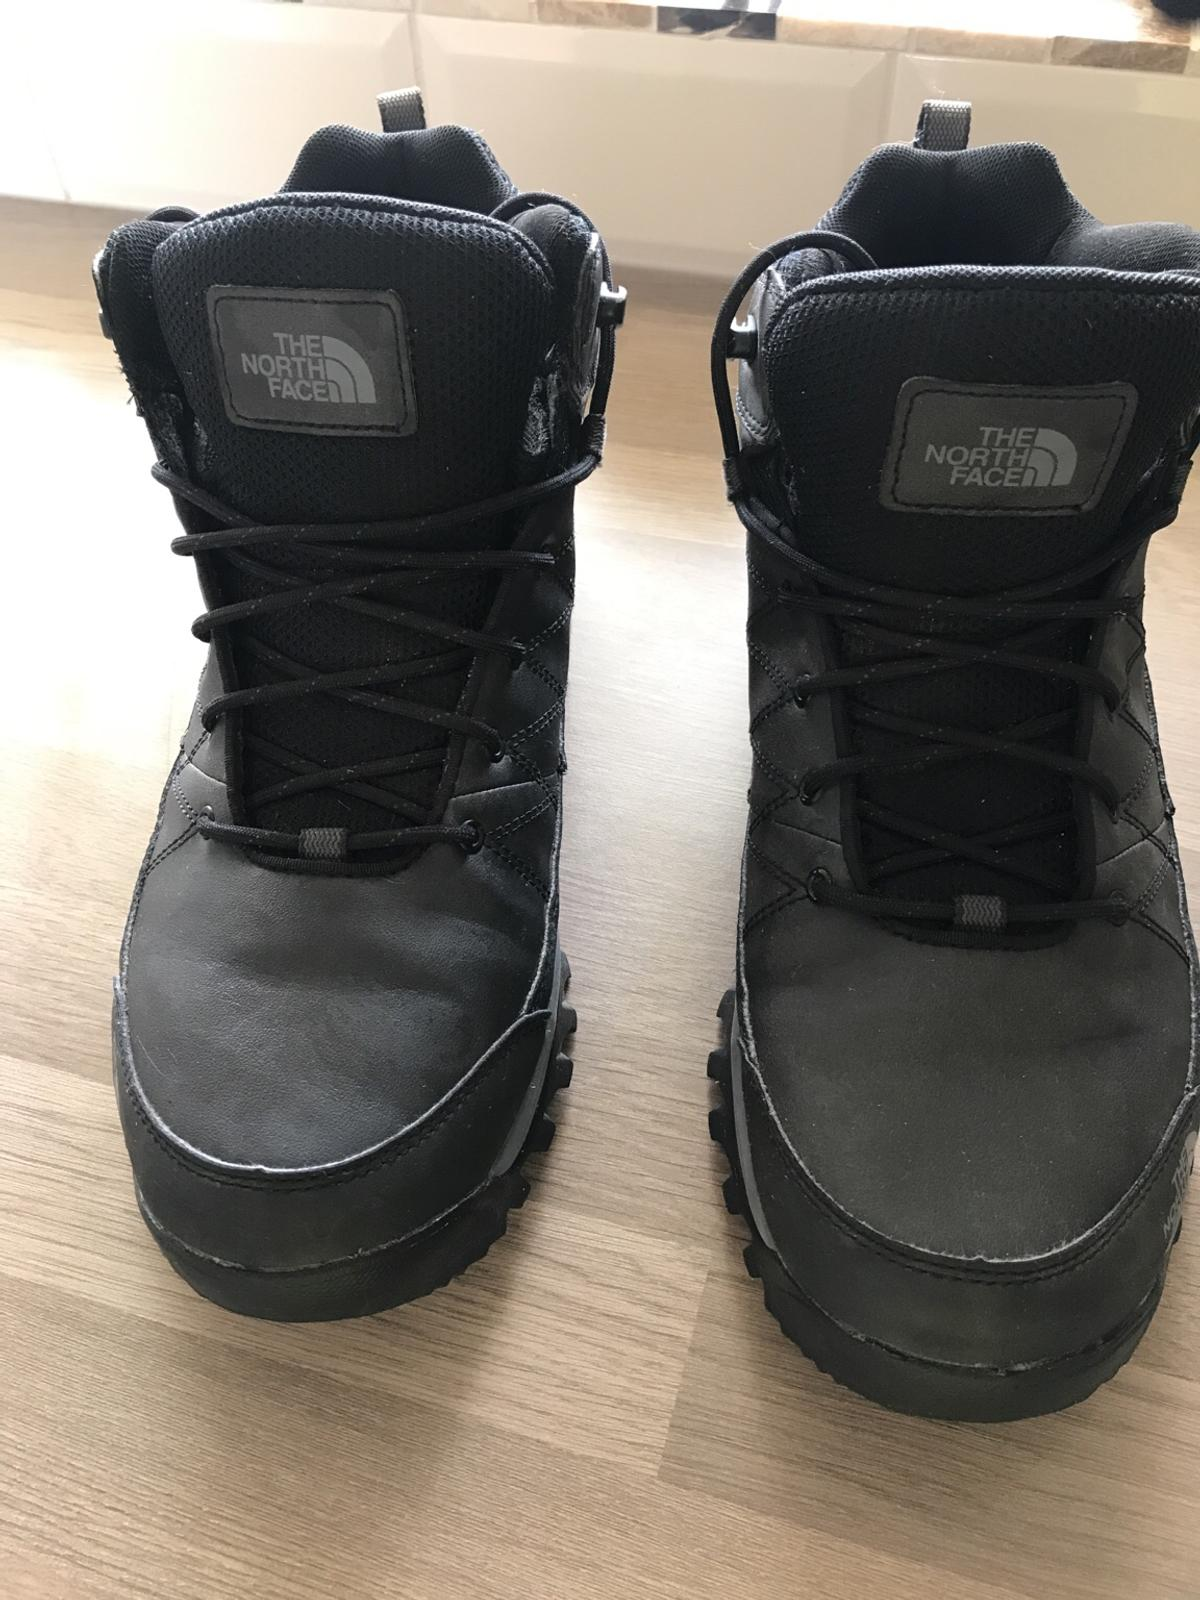 237b77e4189 The north face hiking boots